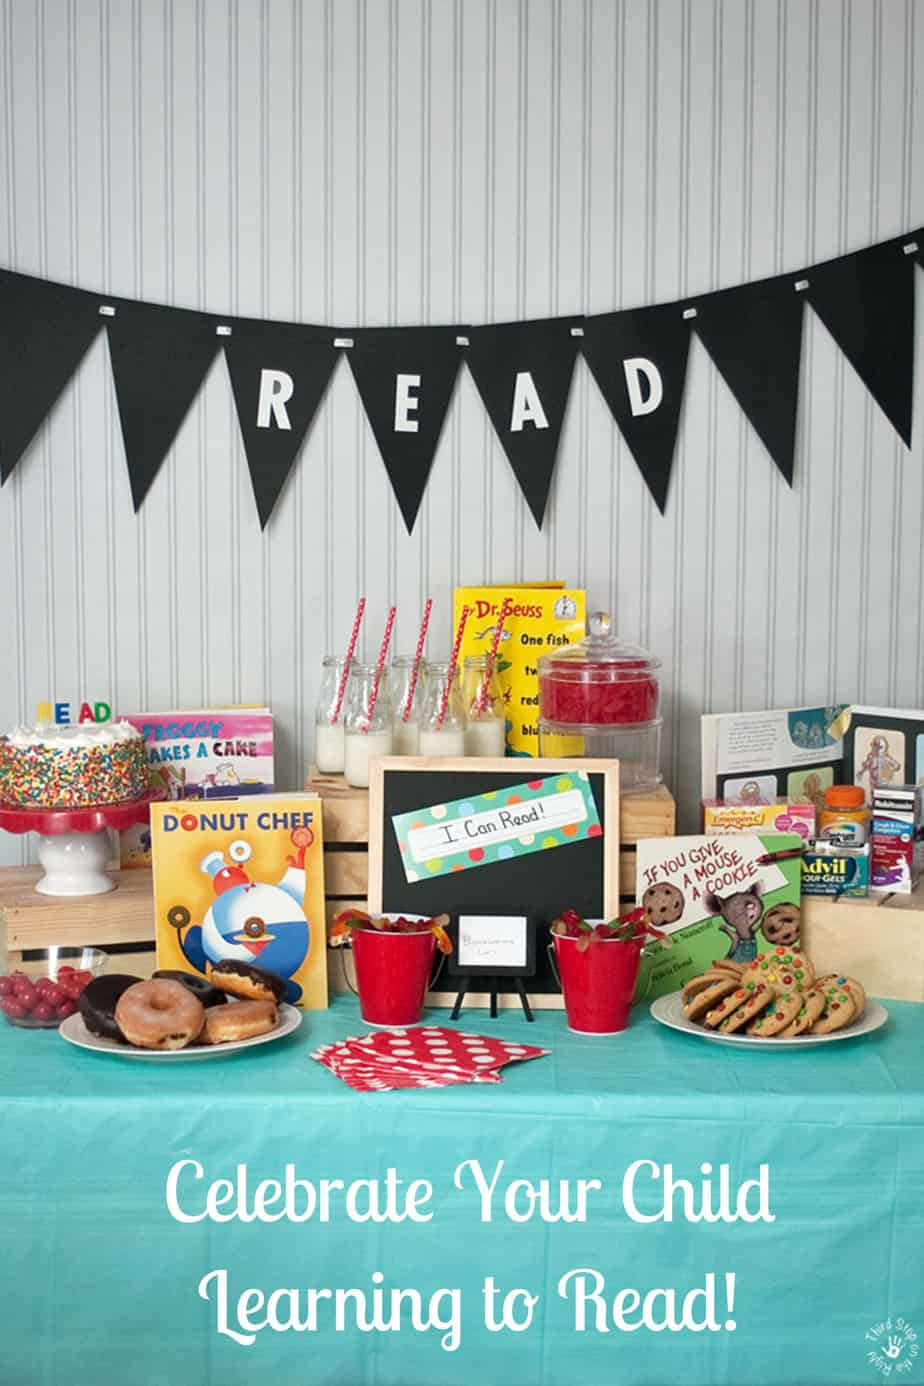 Celebrate Your Child Learning to Read With a Reading Party!